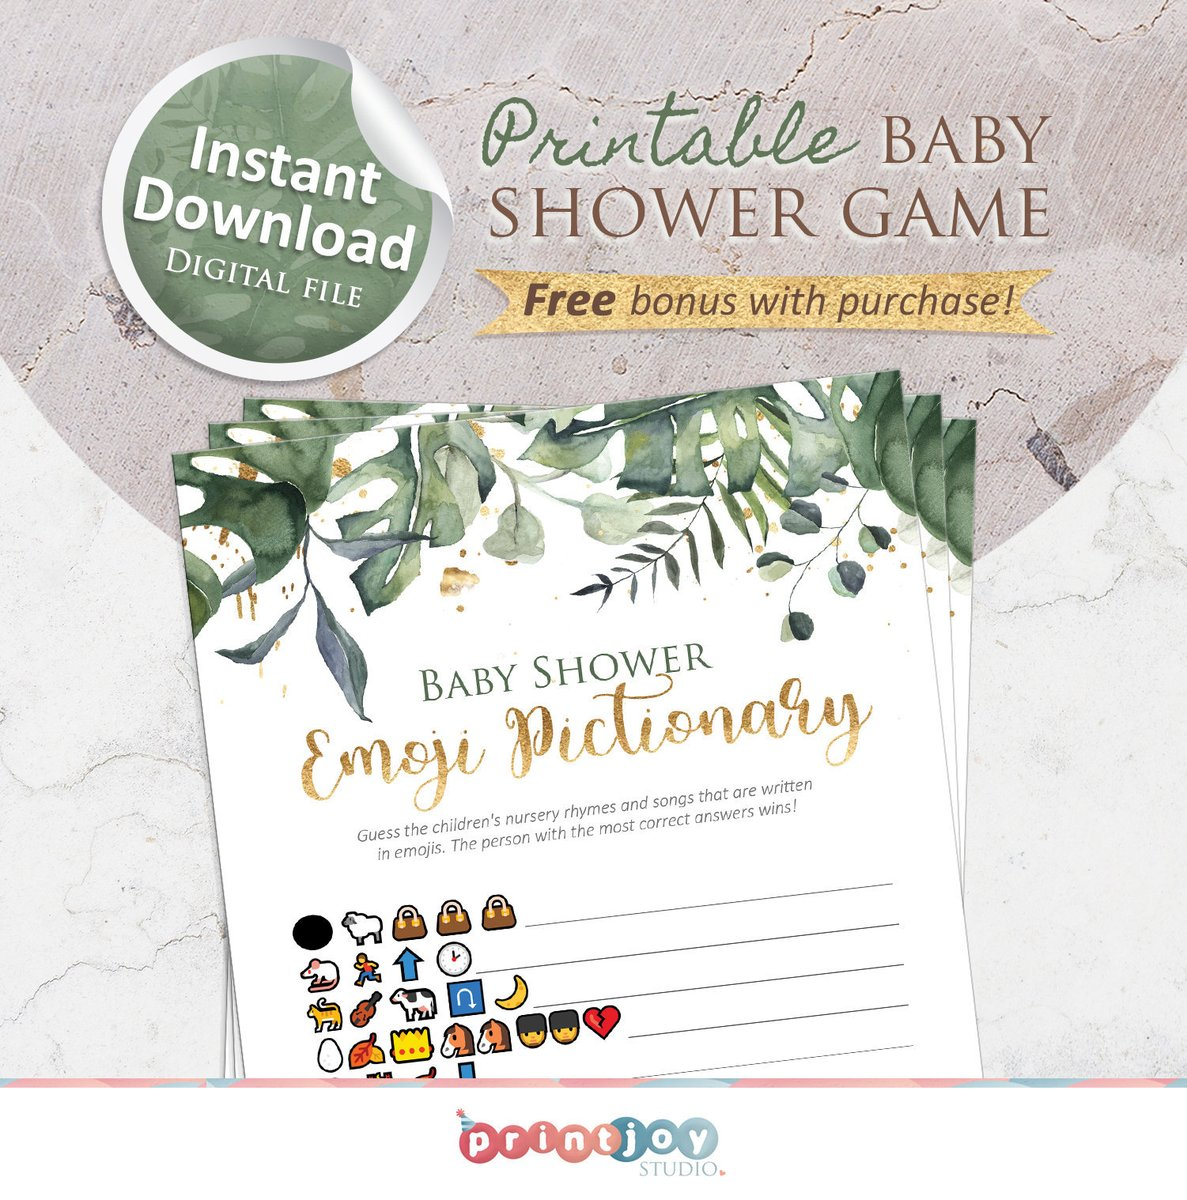 Delight your guests with this printable baby shower game!  You can instantly purchase and download this game here!  >> https://etsy.me/3akptxD<< Check out the brand new Emoji Pictionary game in our Etsy shop!  #BabyShowerGames #BabyShower #BabyShowerIdeas #PrintJpic.twitter.com/3qm6xlQTpP